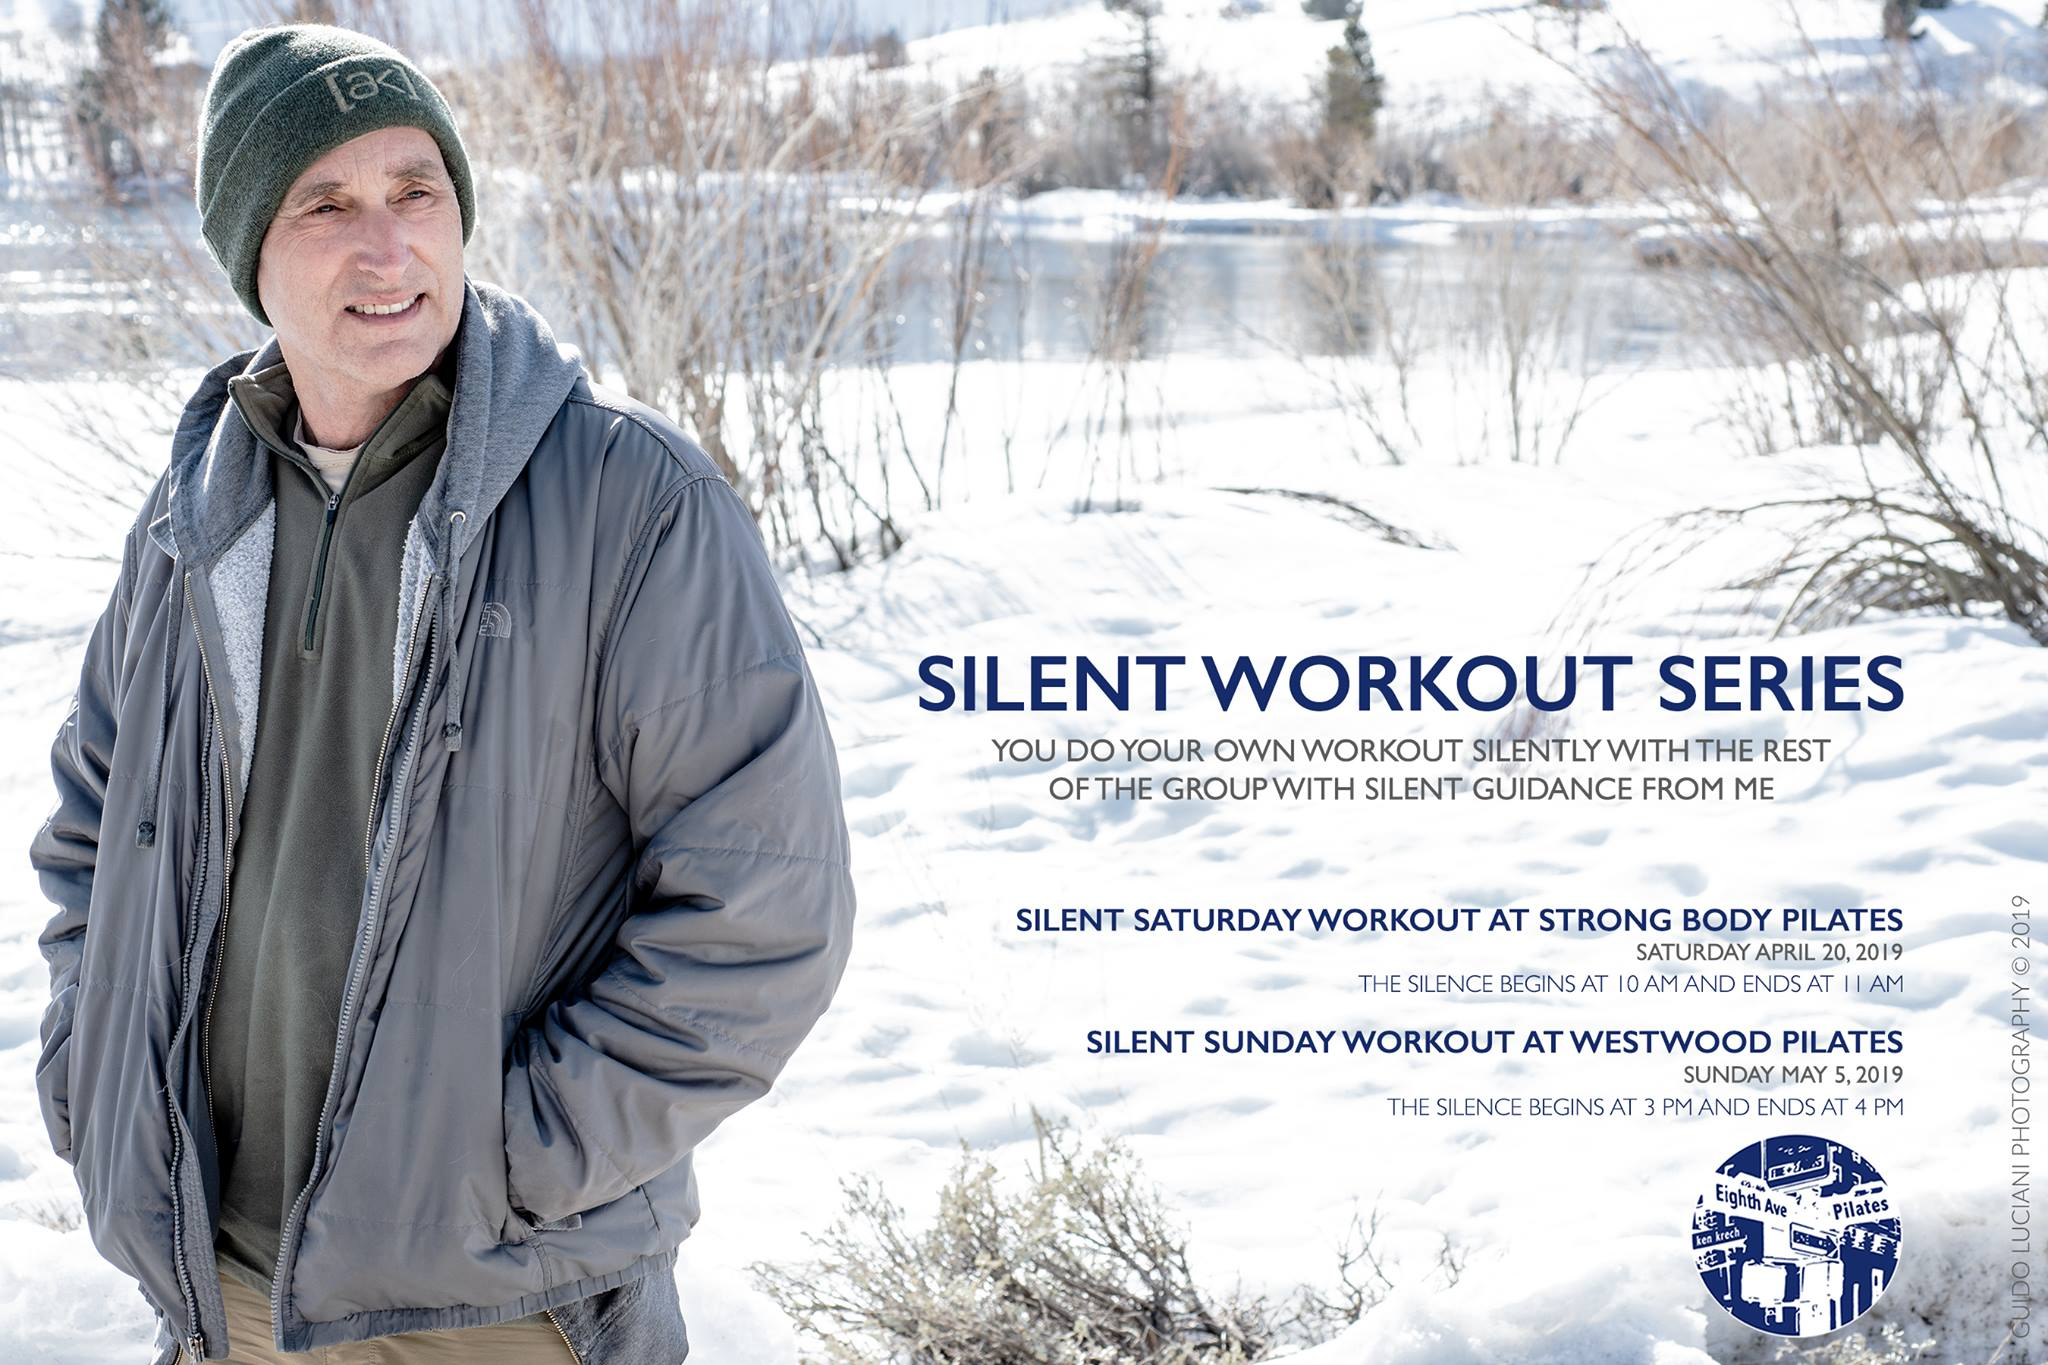 Ken's Silent Sunday Workout at Westwood Pilates   Sunday May 5th, 2019    3pm-4:30pm